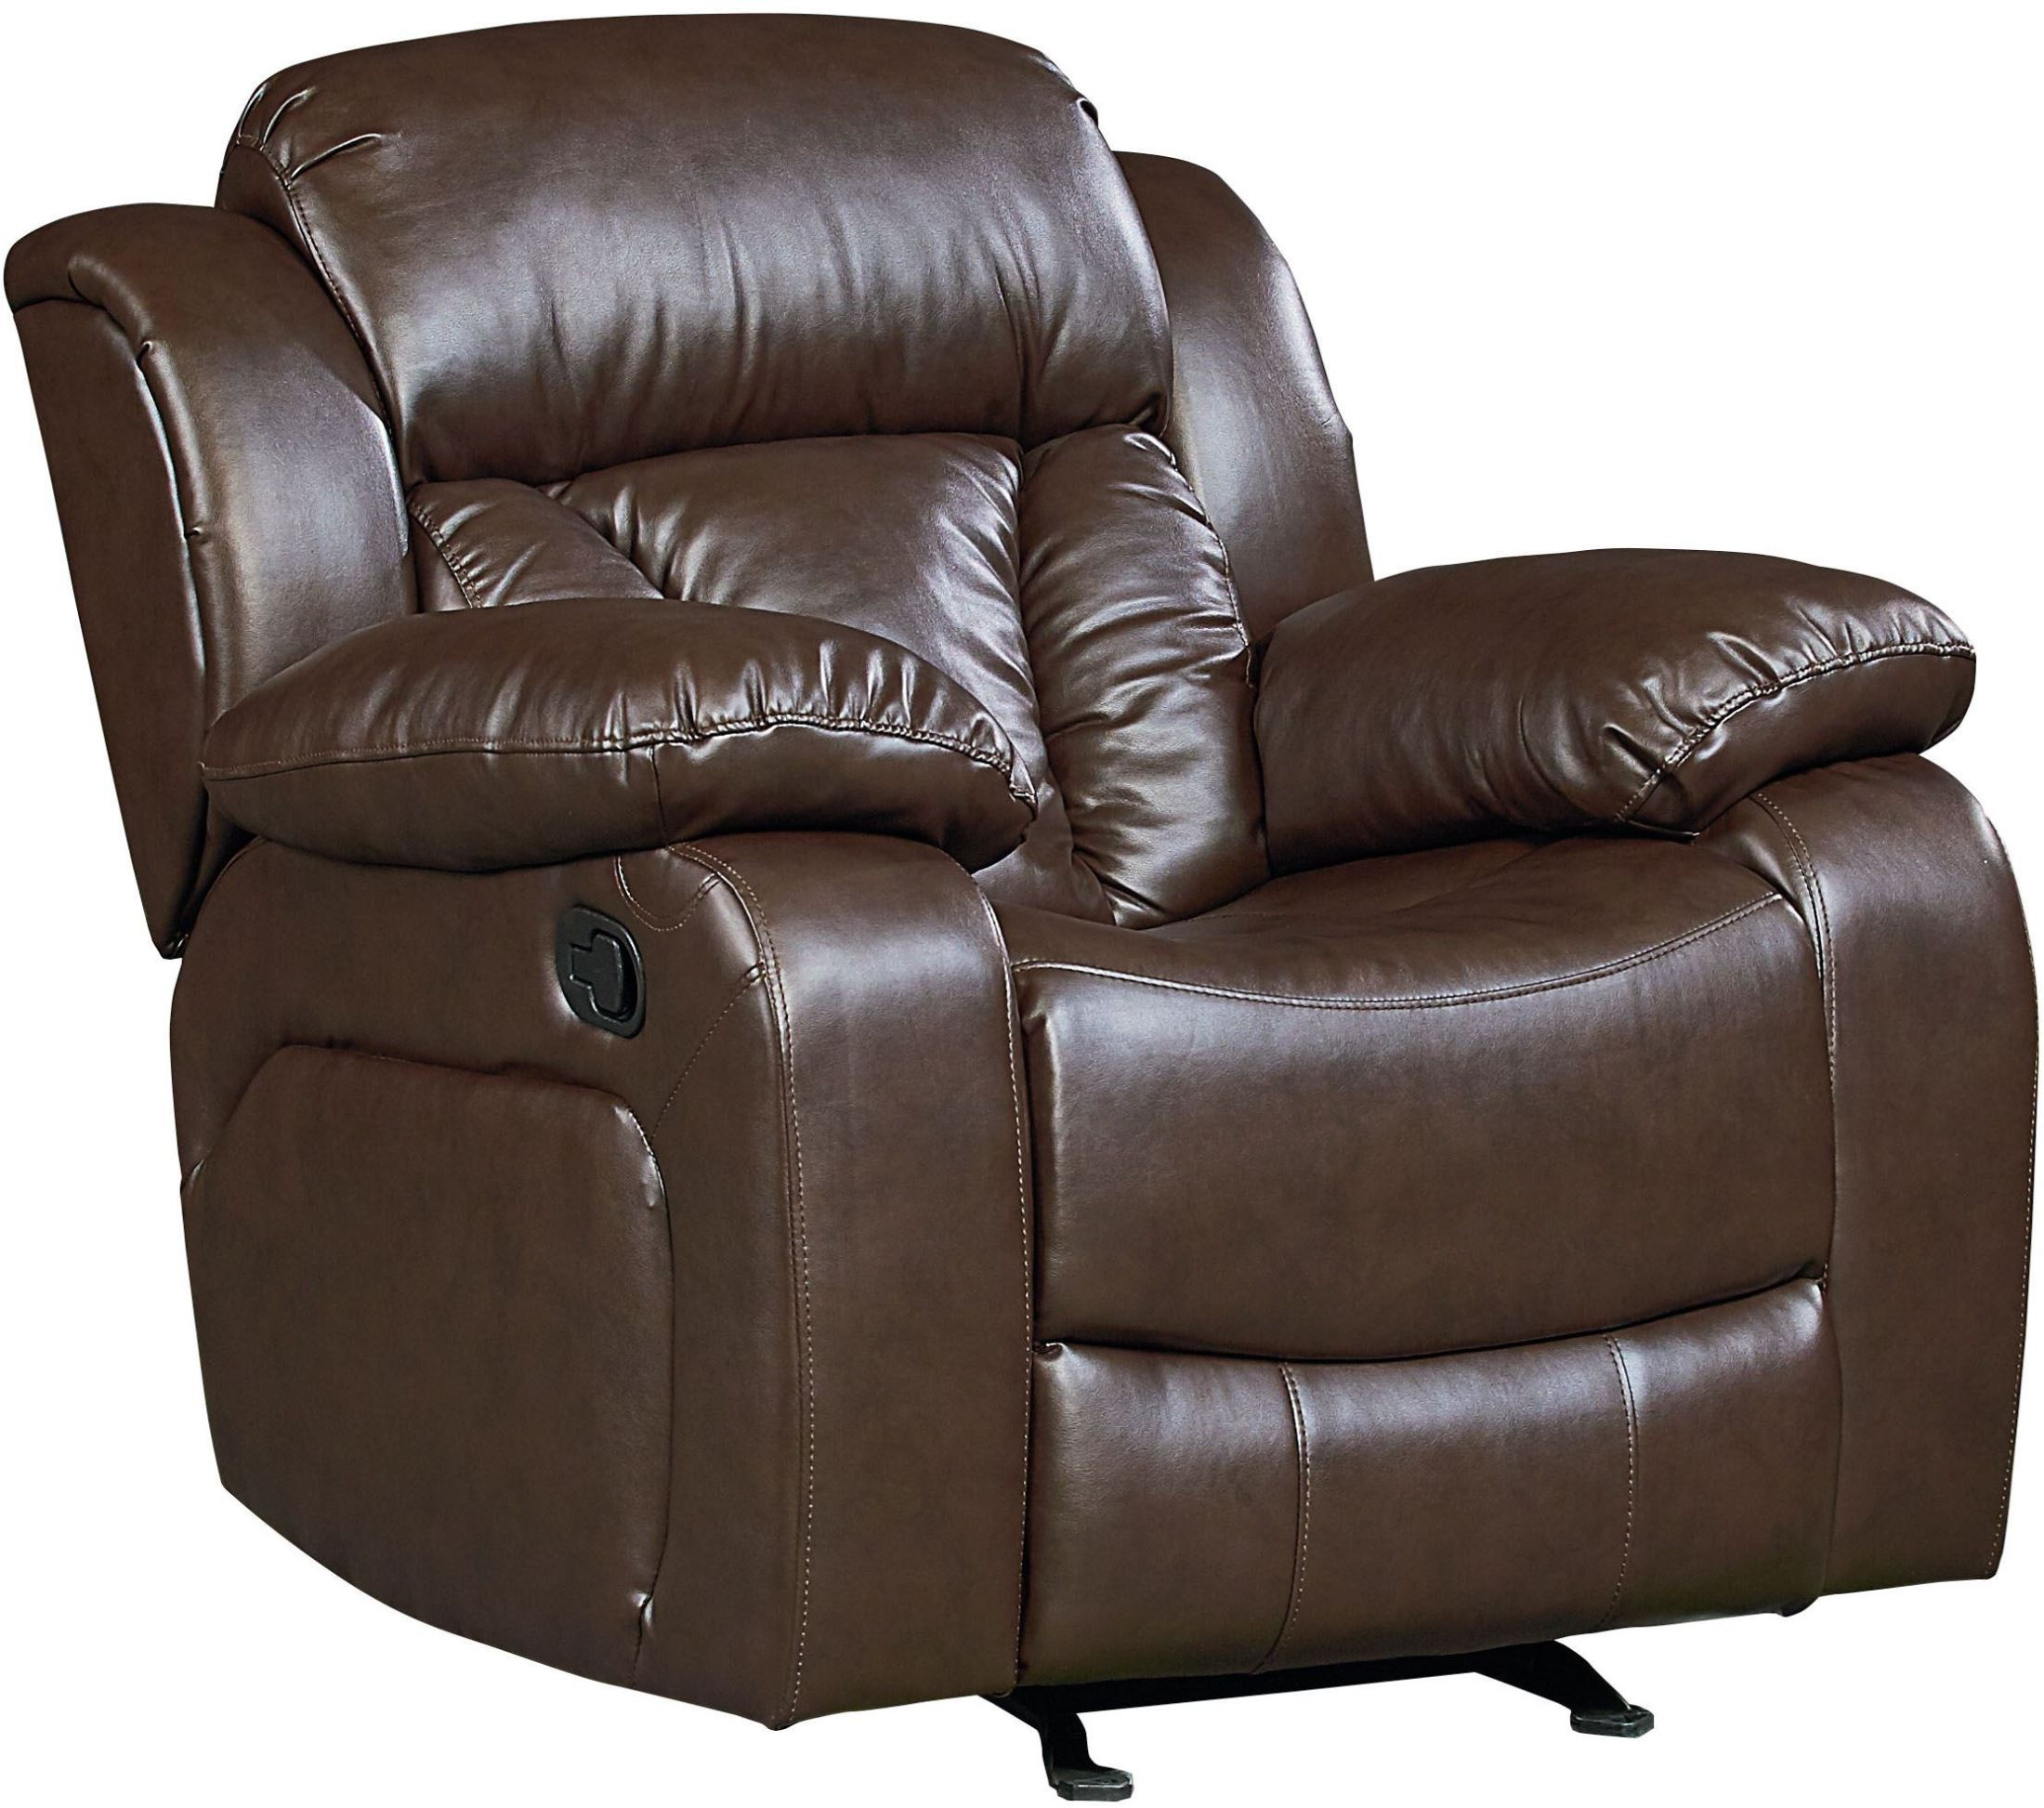 North Shore Chocolate Brown Leather Recliner From Standard